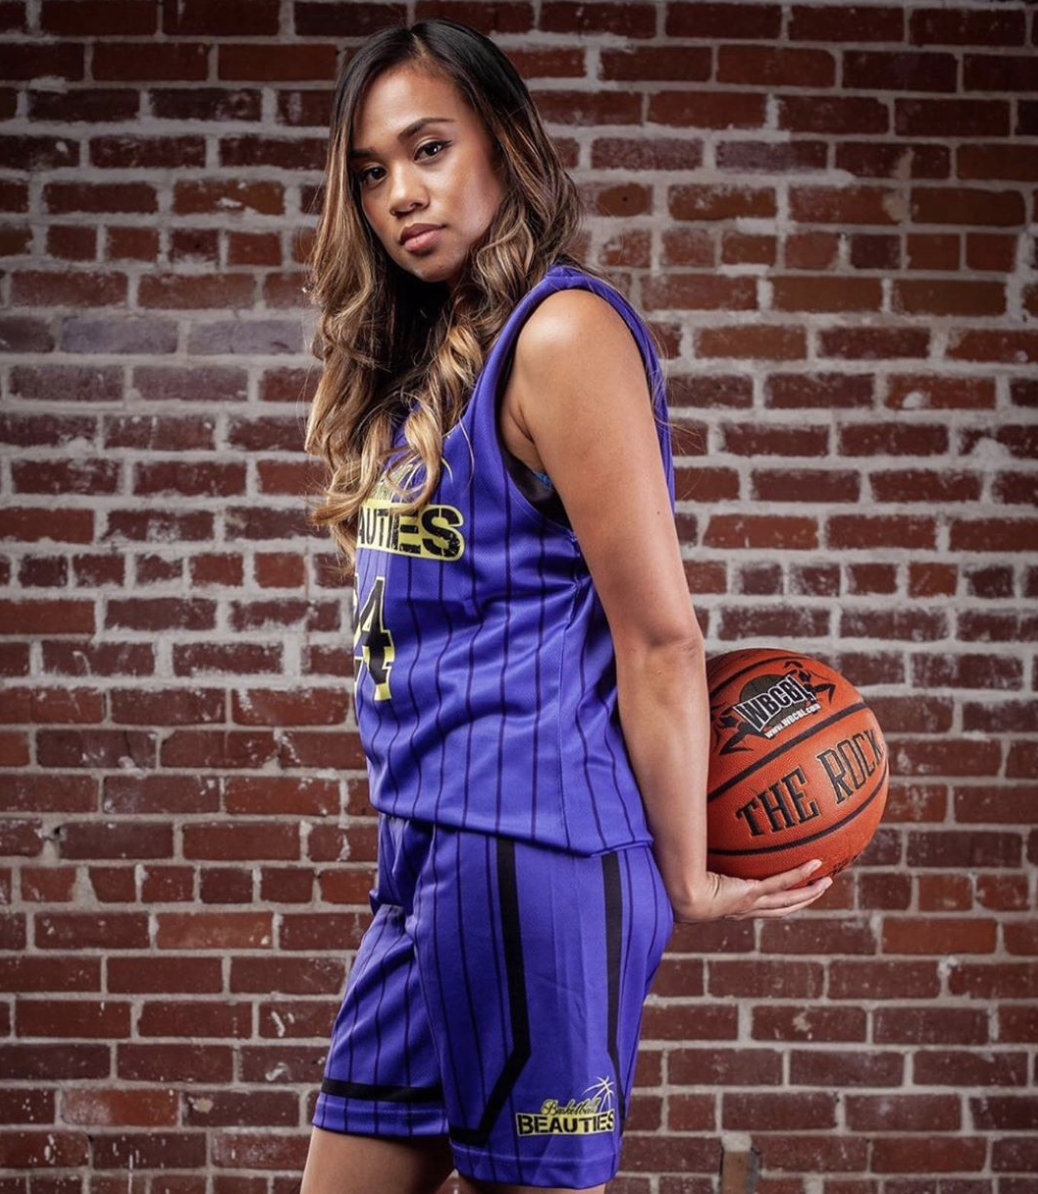 Coast To Coast: This summer the Basketball Beauties League launched their fourth season of showcasing their skills in Los Angeles and New York by announcing their collaboration with Wooter Apparel on the BBL's customized uniforms and apparel line for the 2019 season.